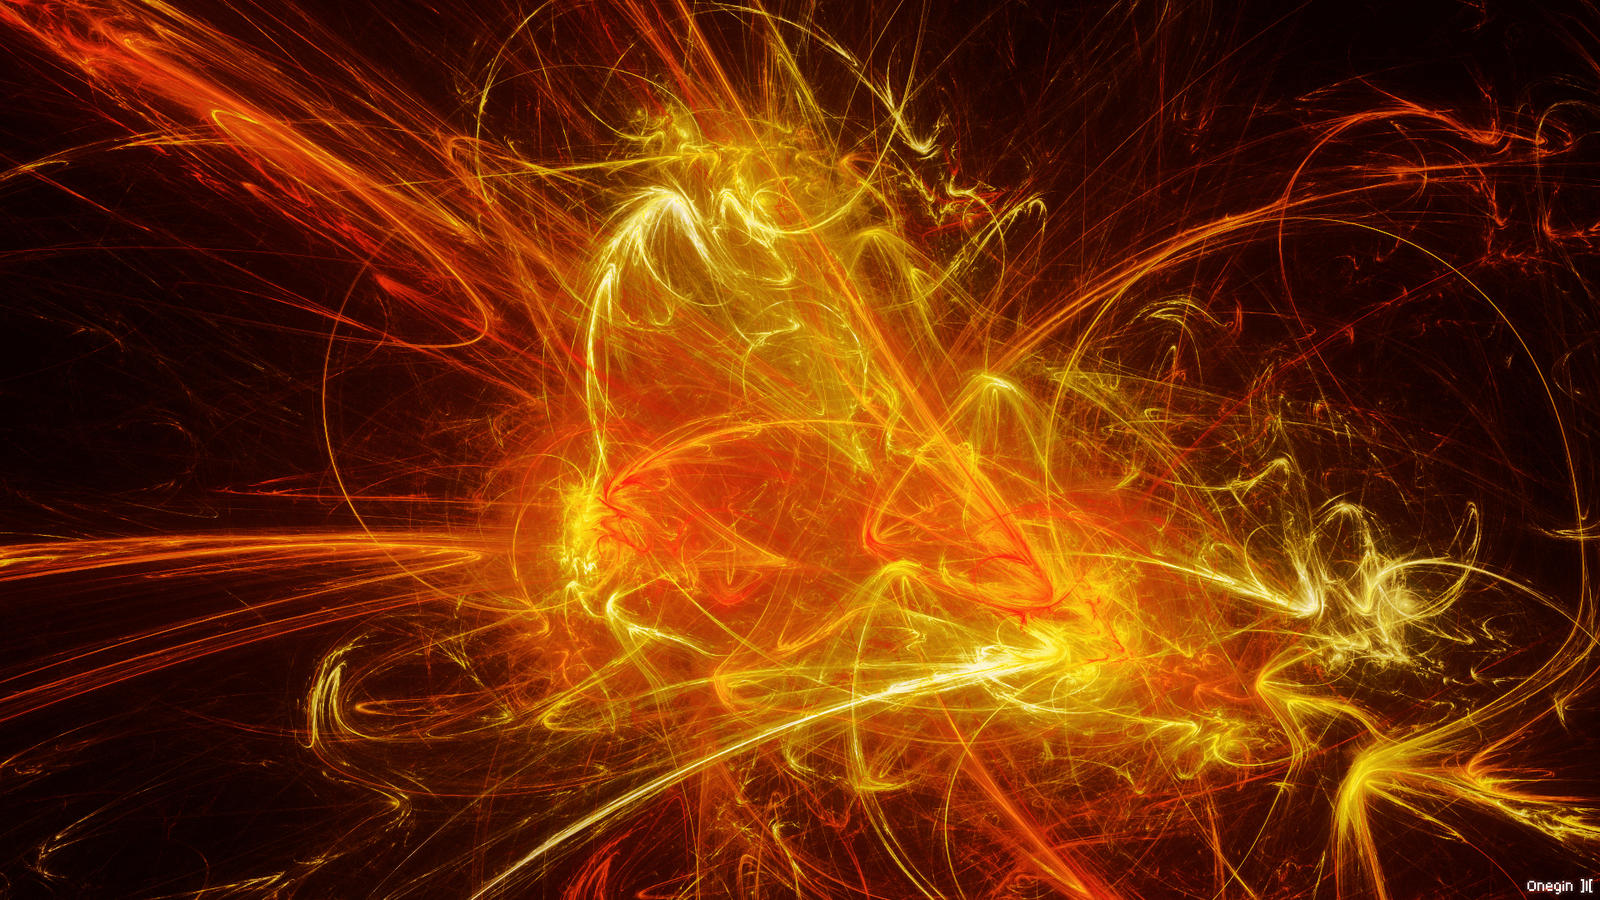 Fractal Flame Wallpaper by OneginIII